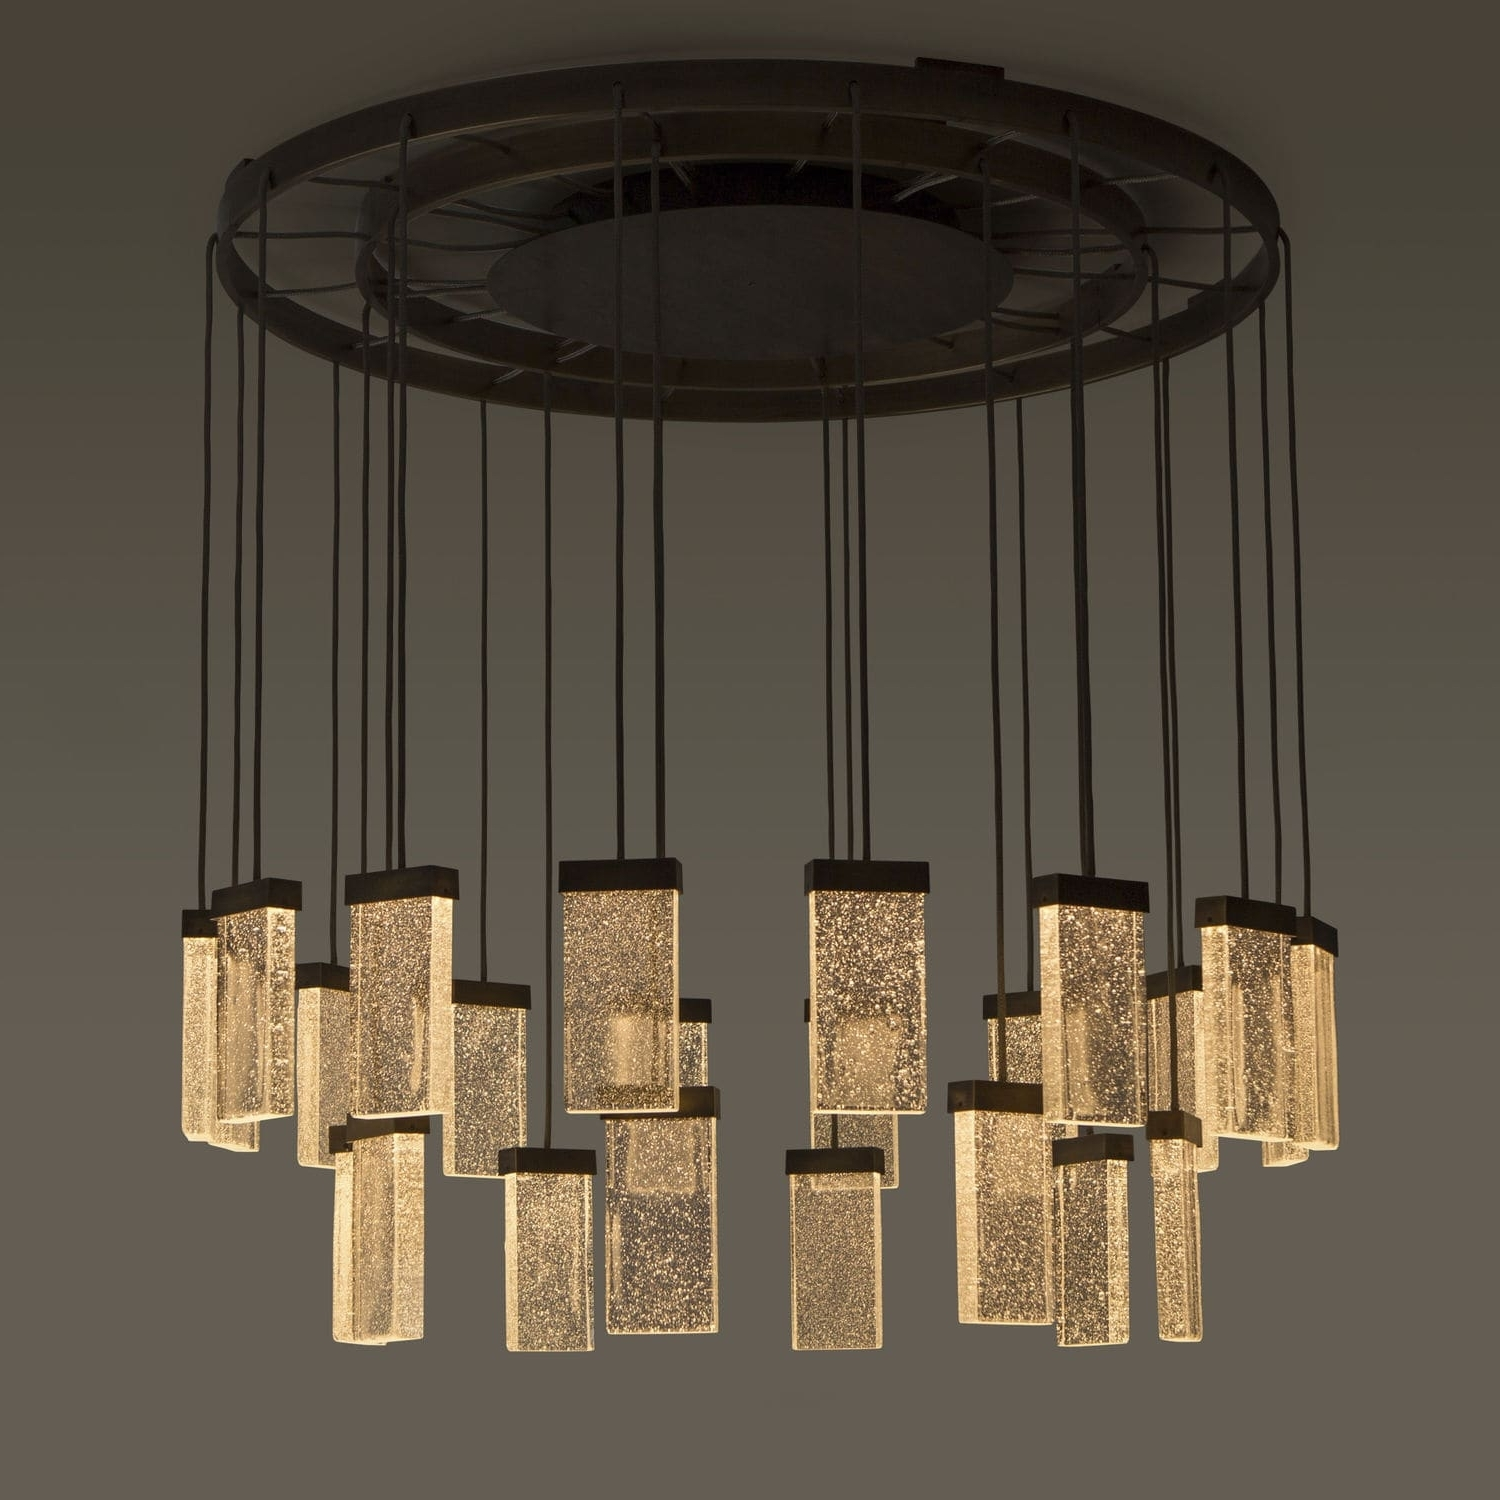 Contemporary Chandelier Throughout Well Known Contemporary Chandelier / Glass / Aluminum / Led – 24 Grand Cru (View 9 of 20)